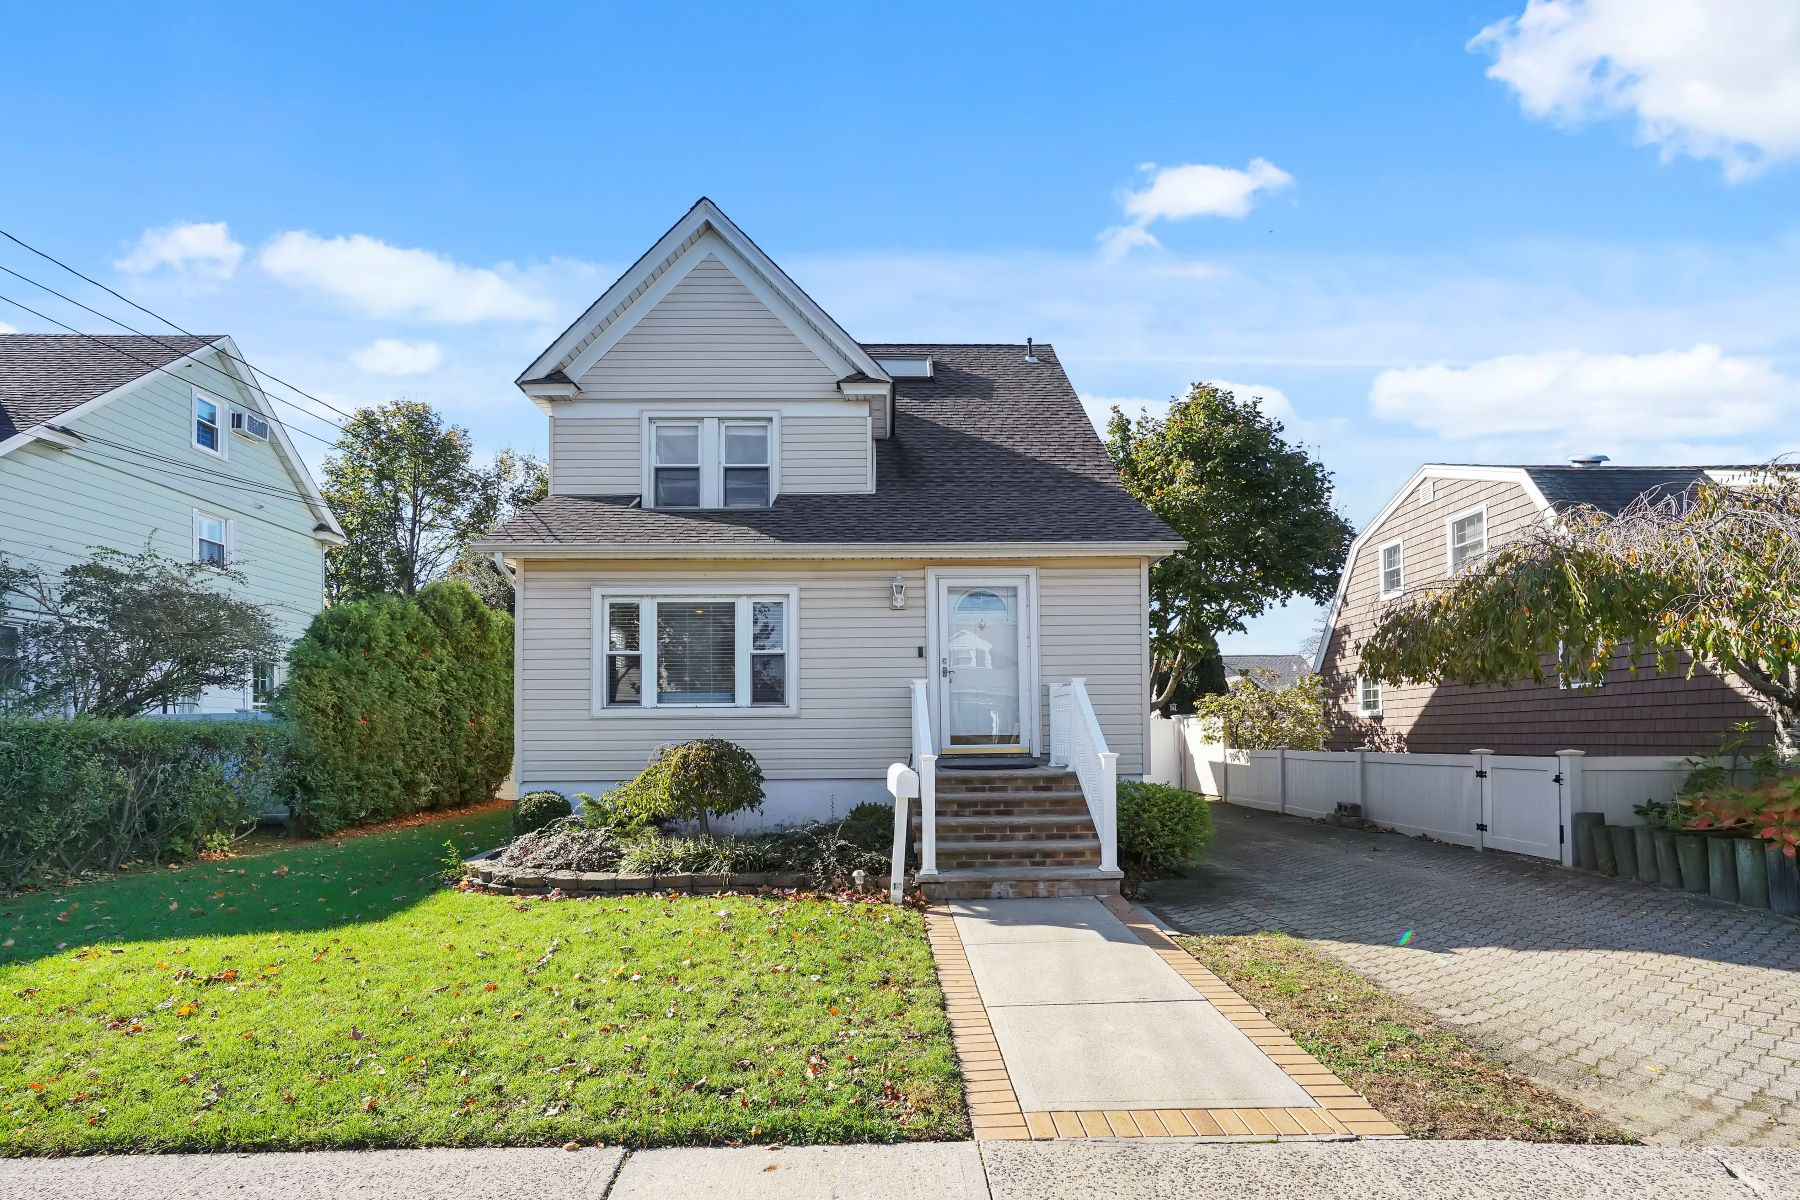 Single Family Homes for Sale at 14 South Franklin Avenue Lynbrook, New York 11563 United States